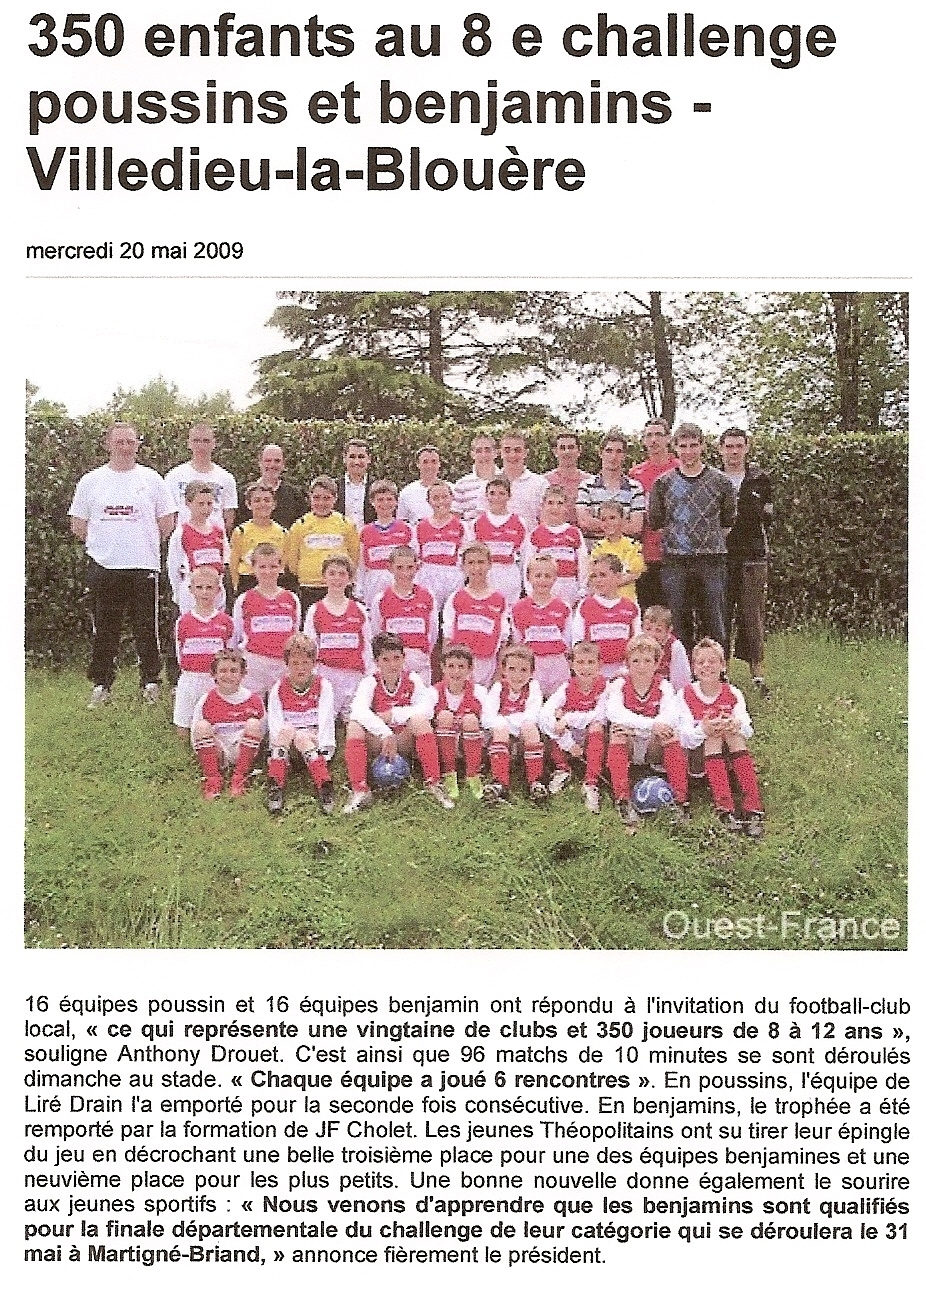 tournoi-pous-benj-2009-of-20-05-09